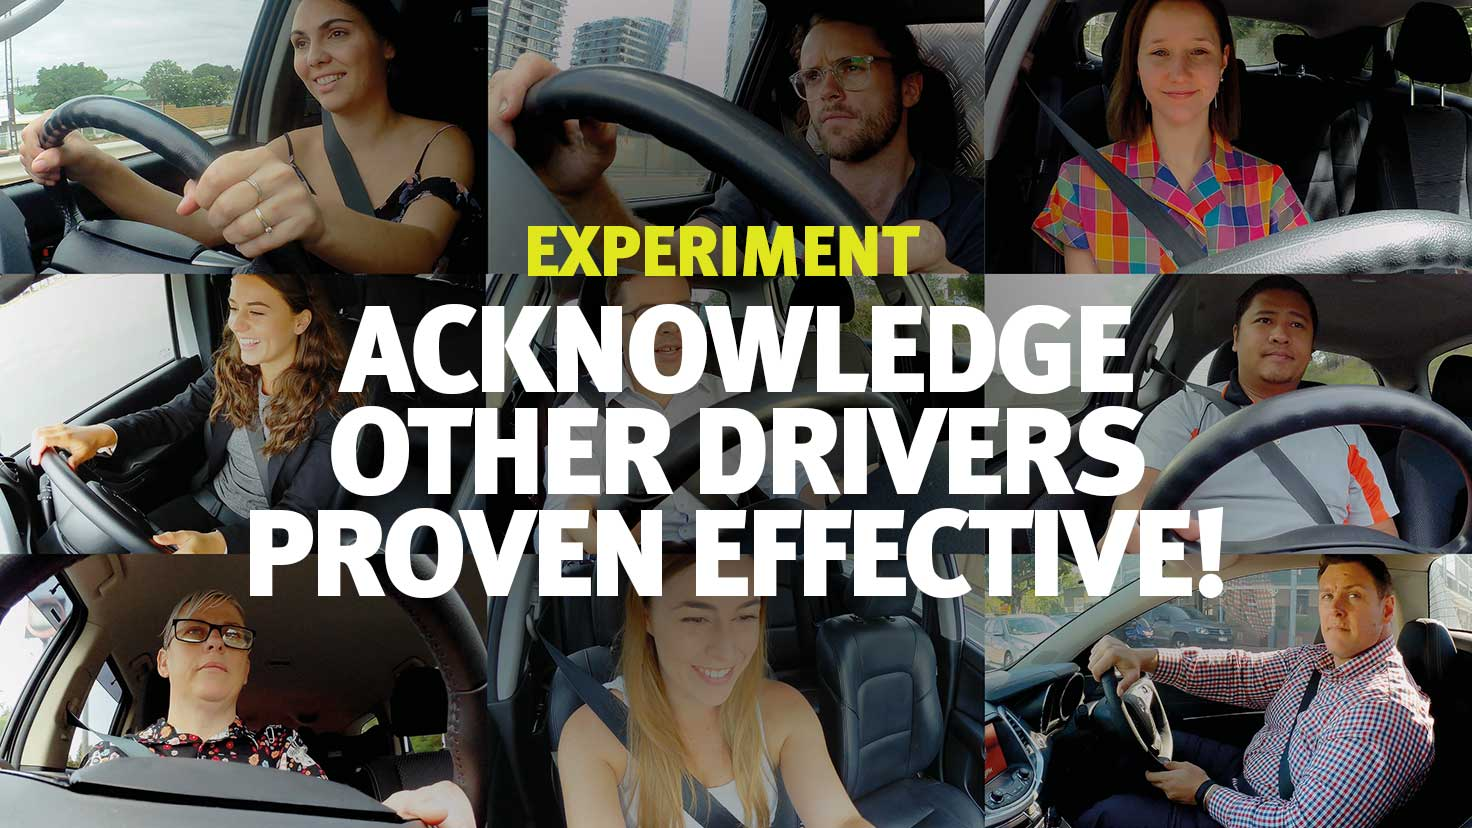 Experiment: Acknowledge other drivers proven effective!